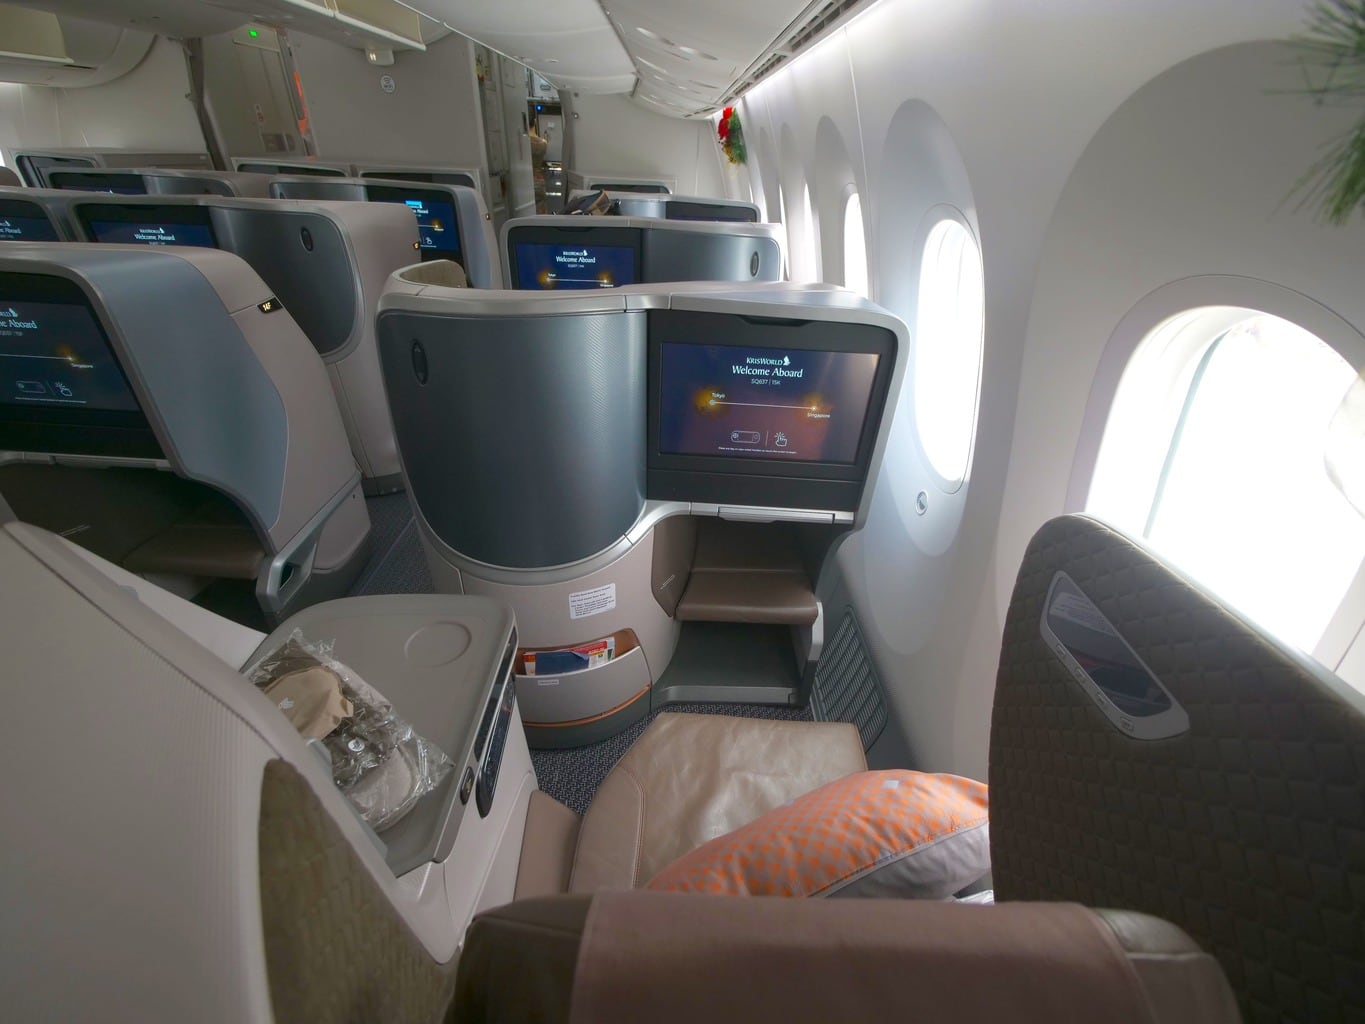 Review of Singapore Airlines Boeing 787-10 Business Class